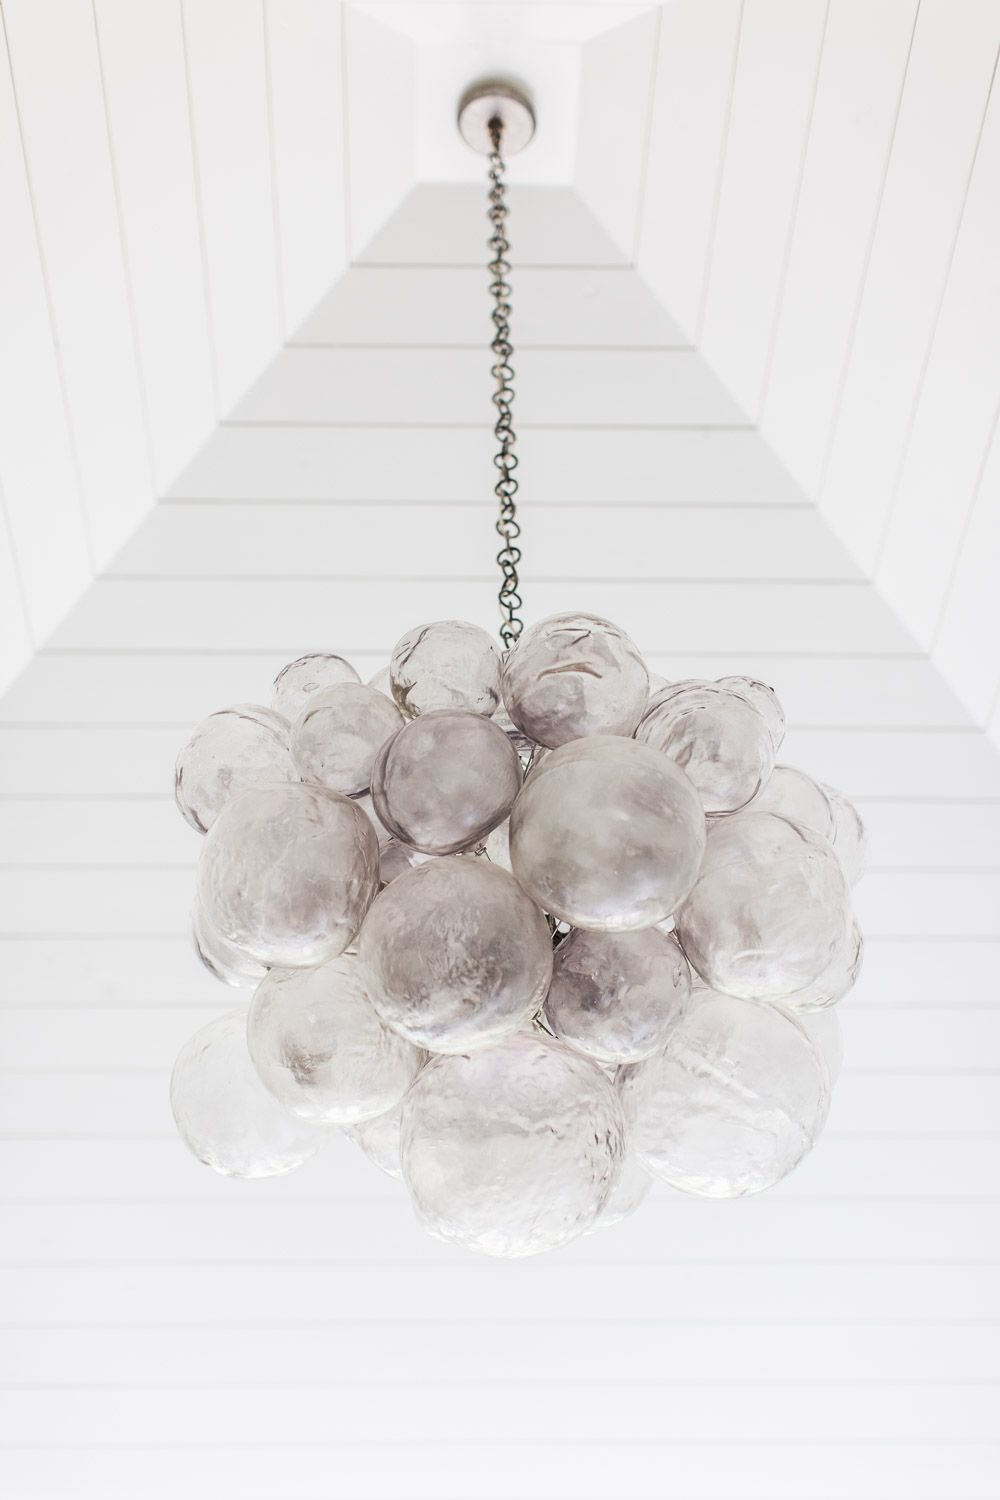 Alyssarosenheck2015 nashville symphony show house accessories southern home with neutral interiors hand blown glass chandelier oly studio muriel chandelier arubaitofo Choice Image